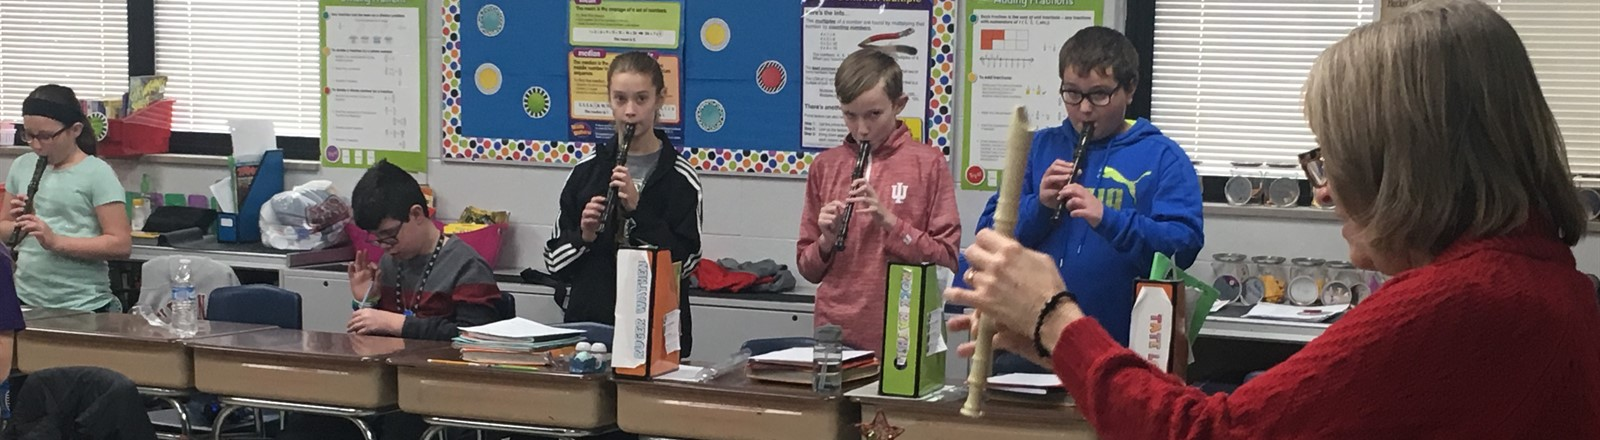 Students playing recorders in music class.